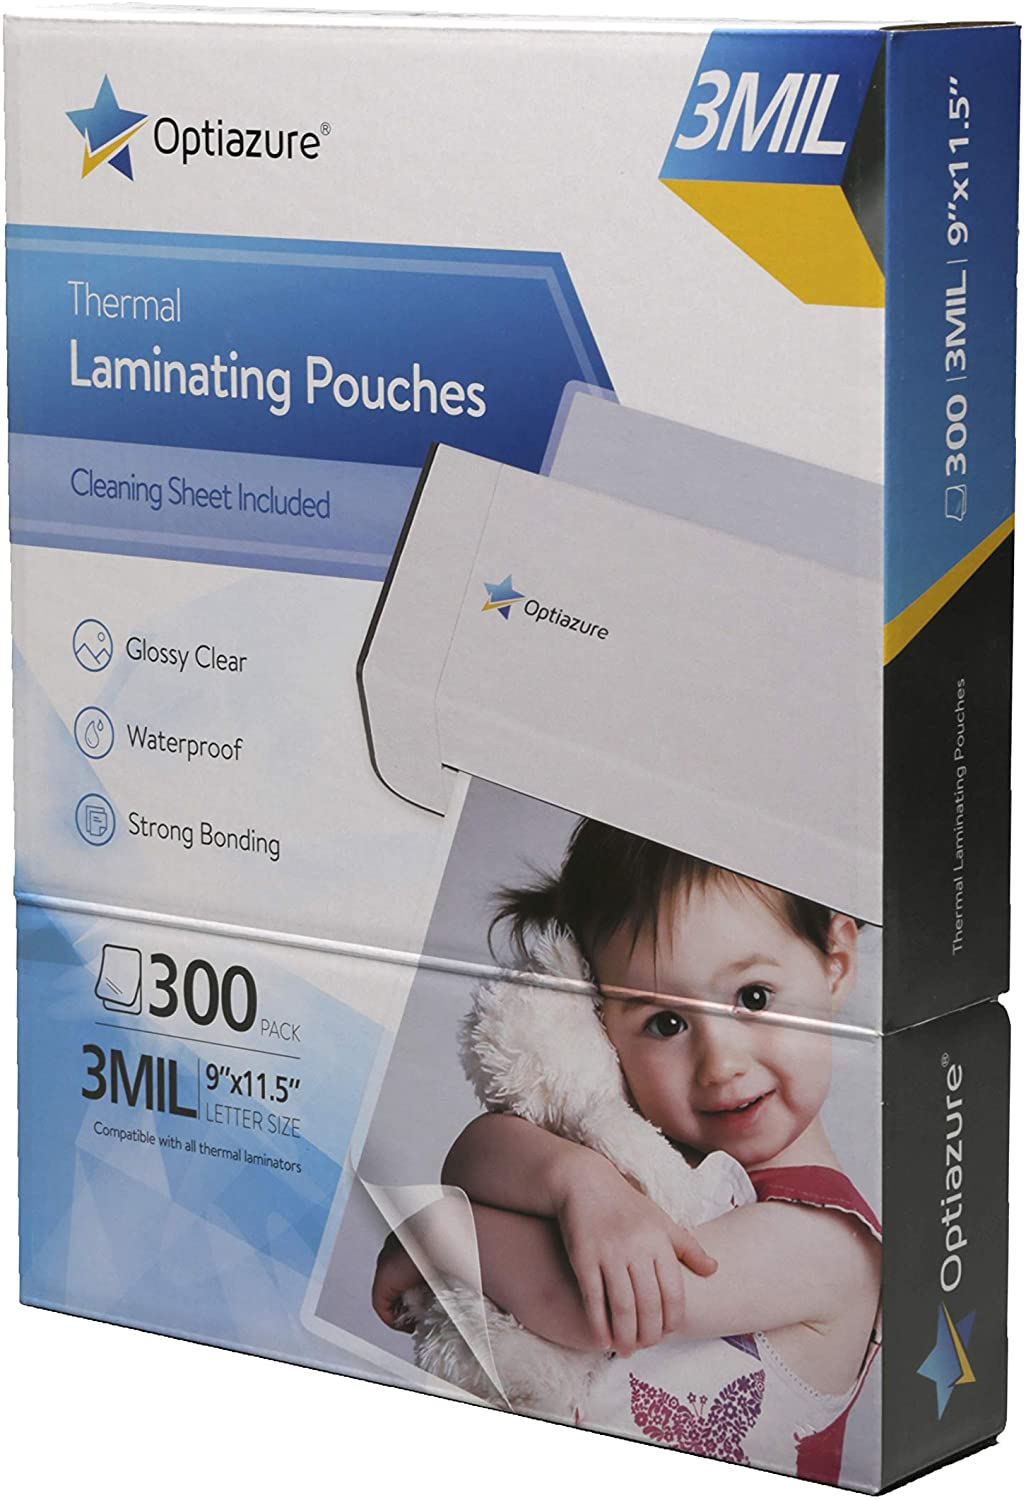 Optiazure Thermal Laminating Pouches 9